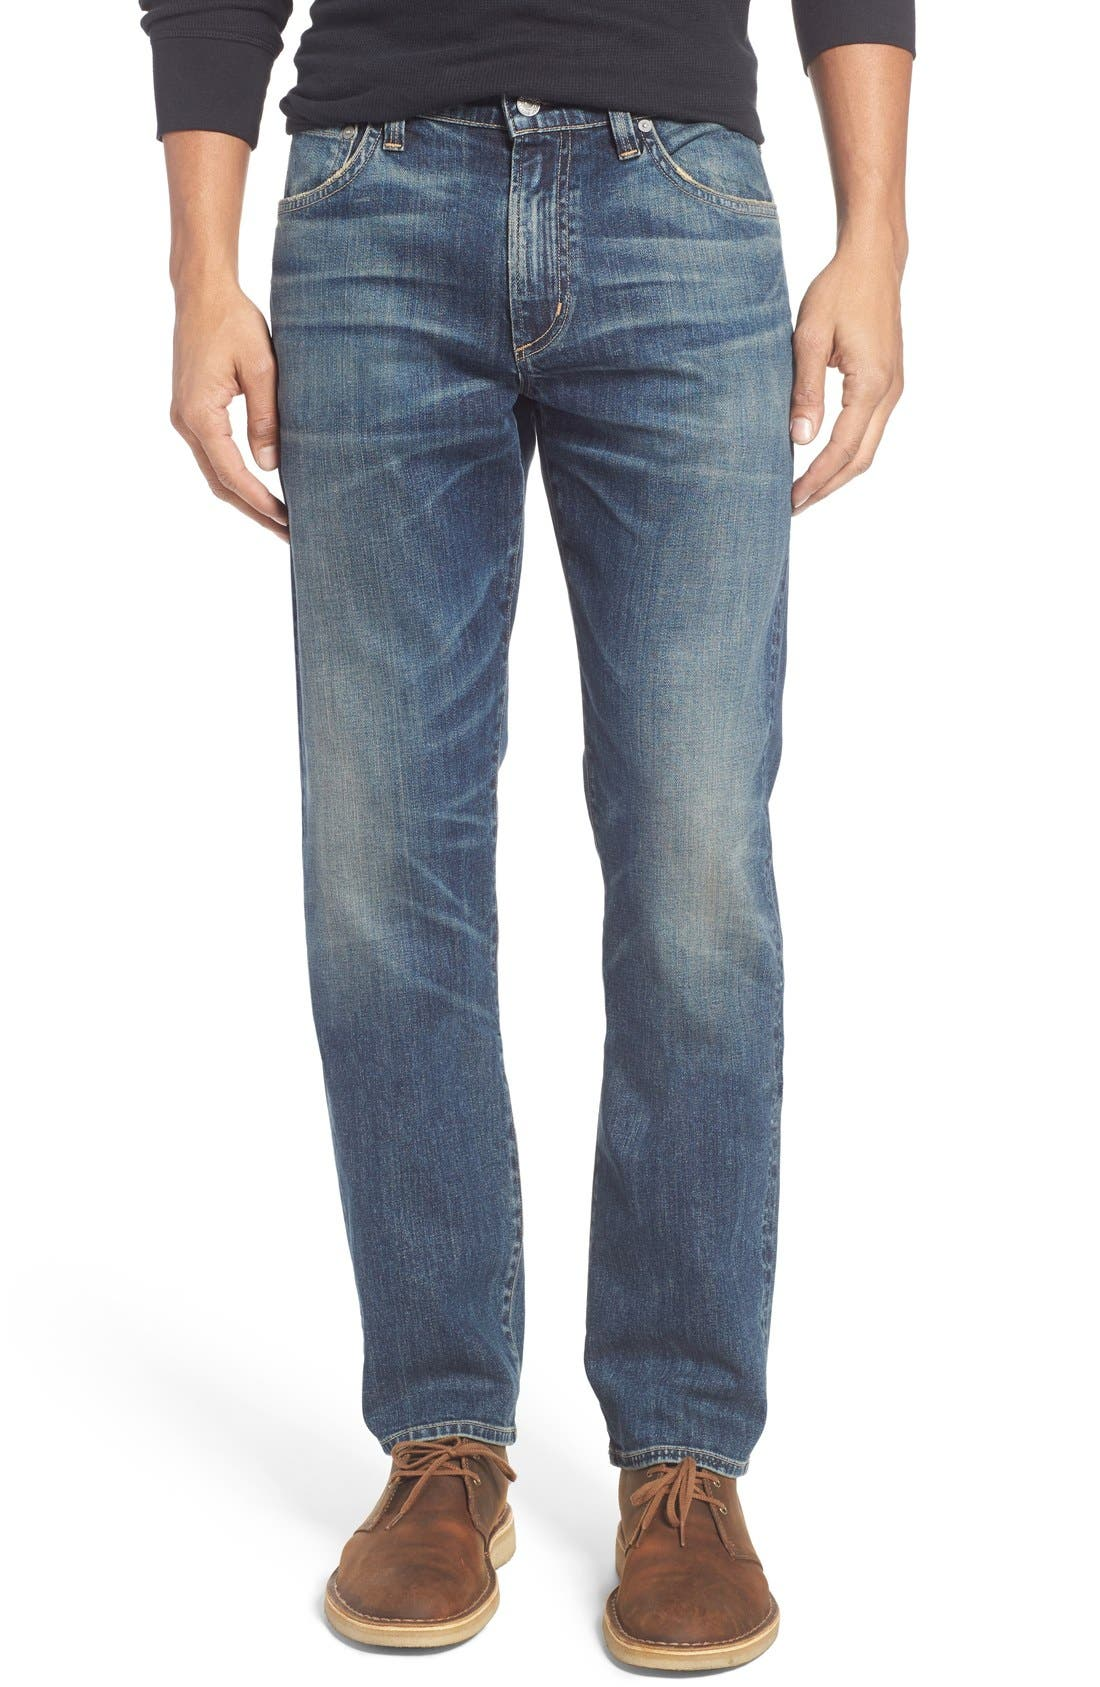 Alternate Image 1 Selected - Citizens of Humanity Gage Slim Straight Leg Jeans (Dunes)